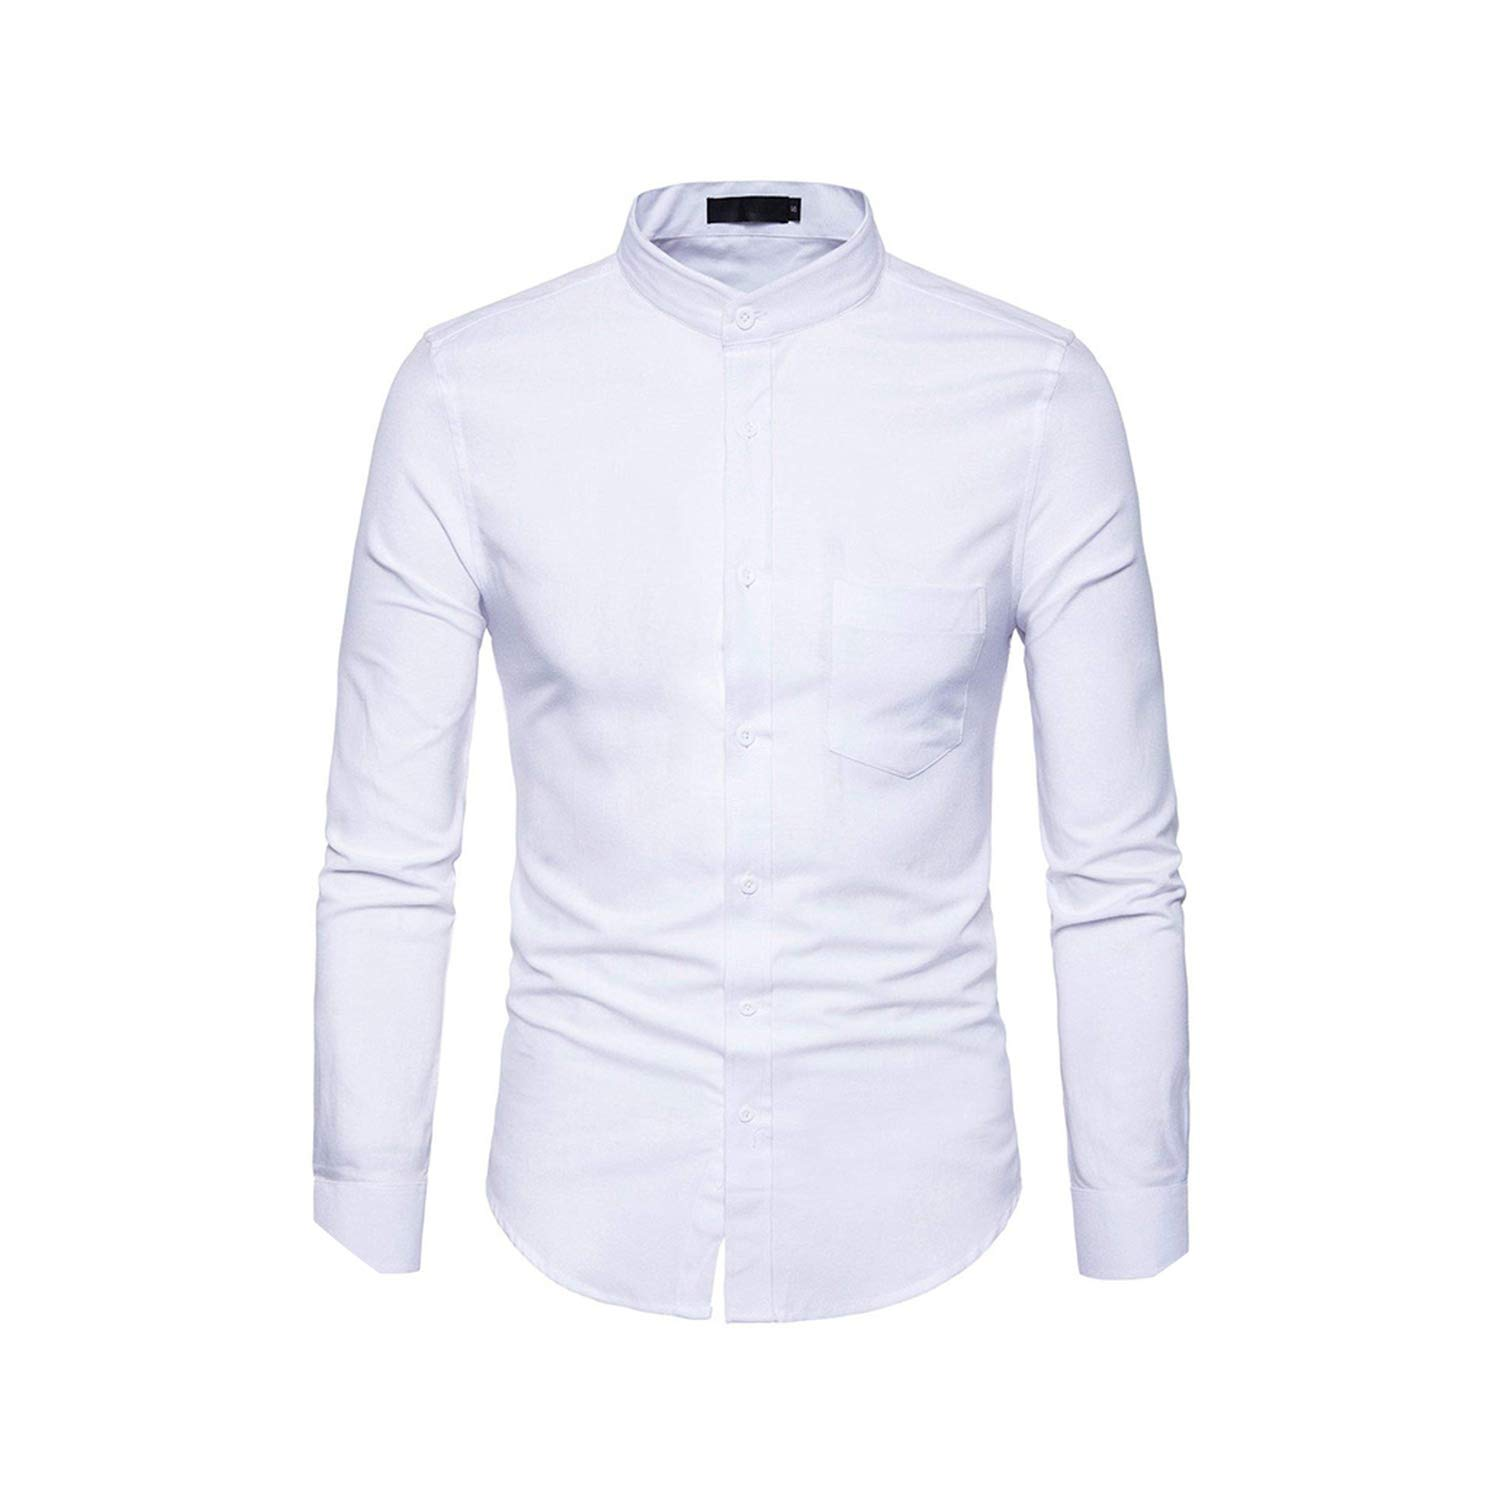 disiren Mens Dress Shirts Stand Collar Chemise Casual Slim Fit Long Sleeve